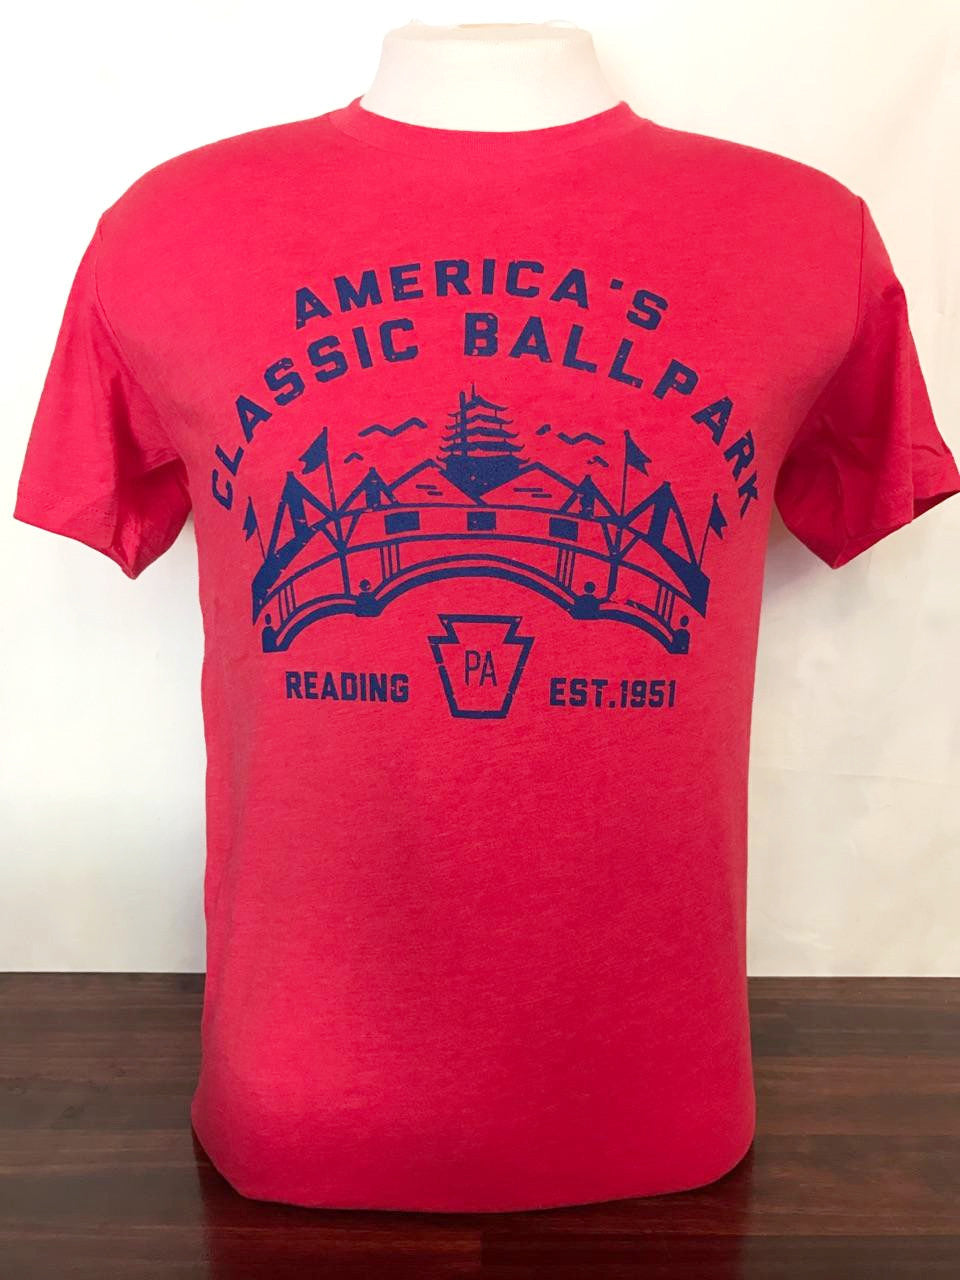 Reading Vintage Ballpark Shirt